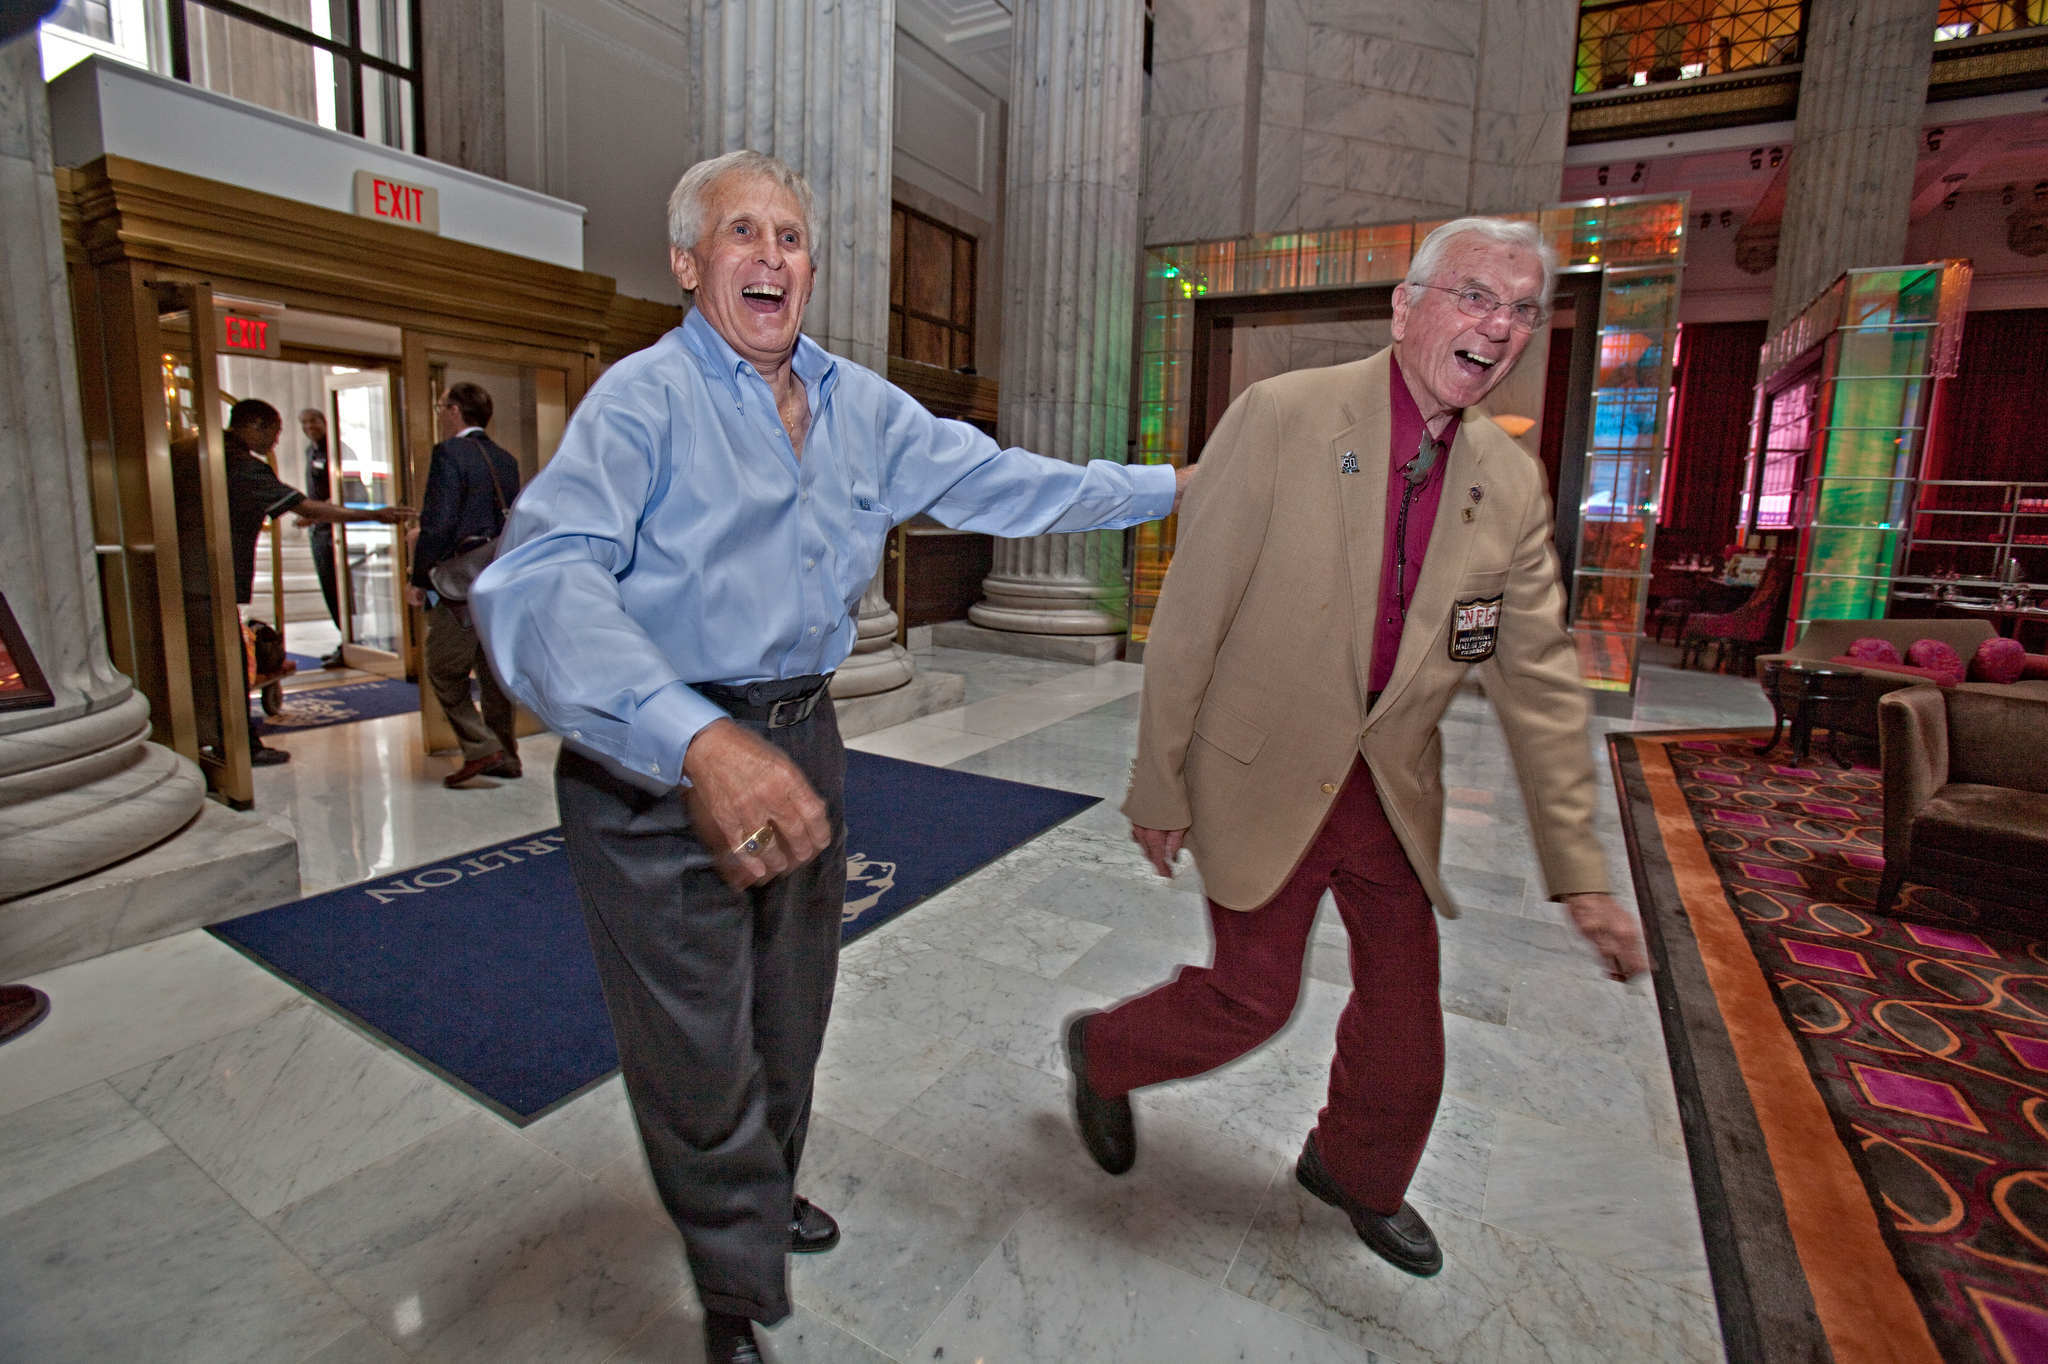 Tommy McDonald (left) and Chuck Bednarik during a 2010 meet and greet for members of the 1960 NFL championship team.